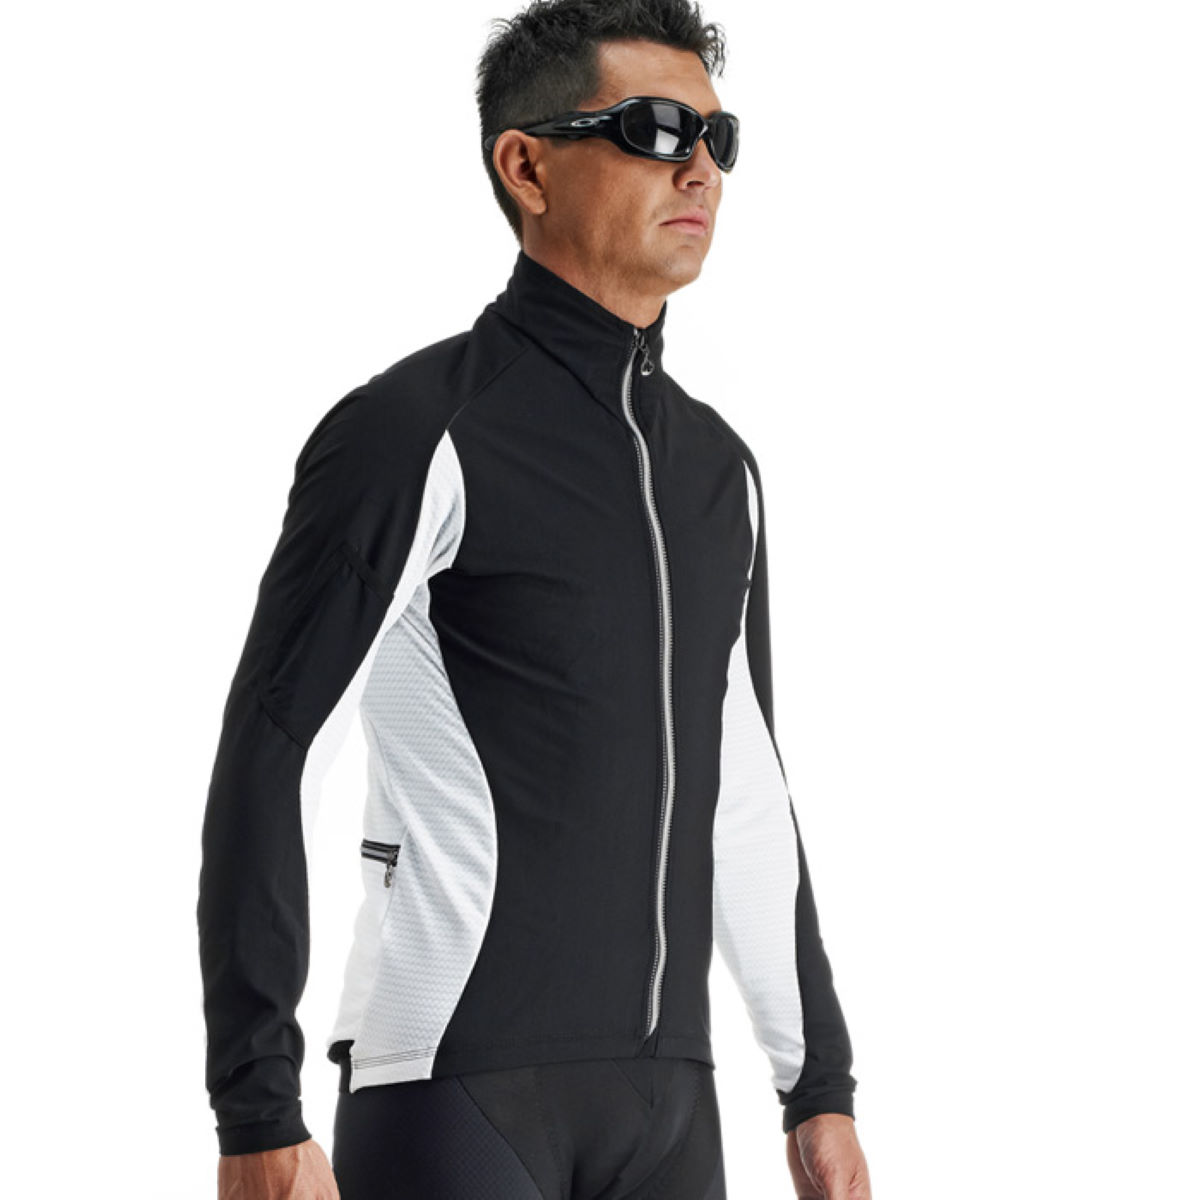 Veste coupe-vent Assos iJ.HaBu5 - XL White Panther Coupe-vents vélo